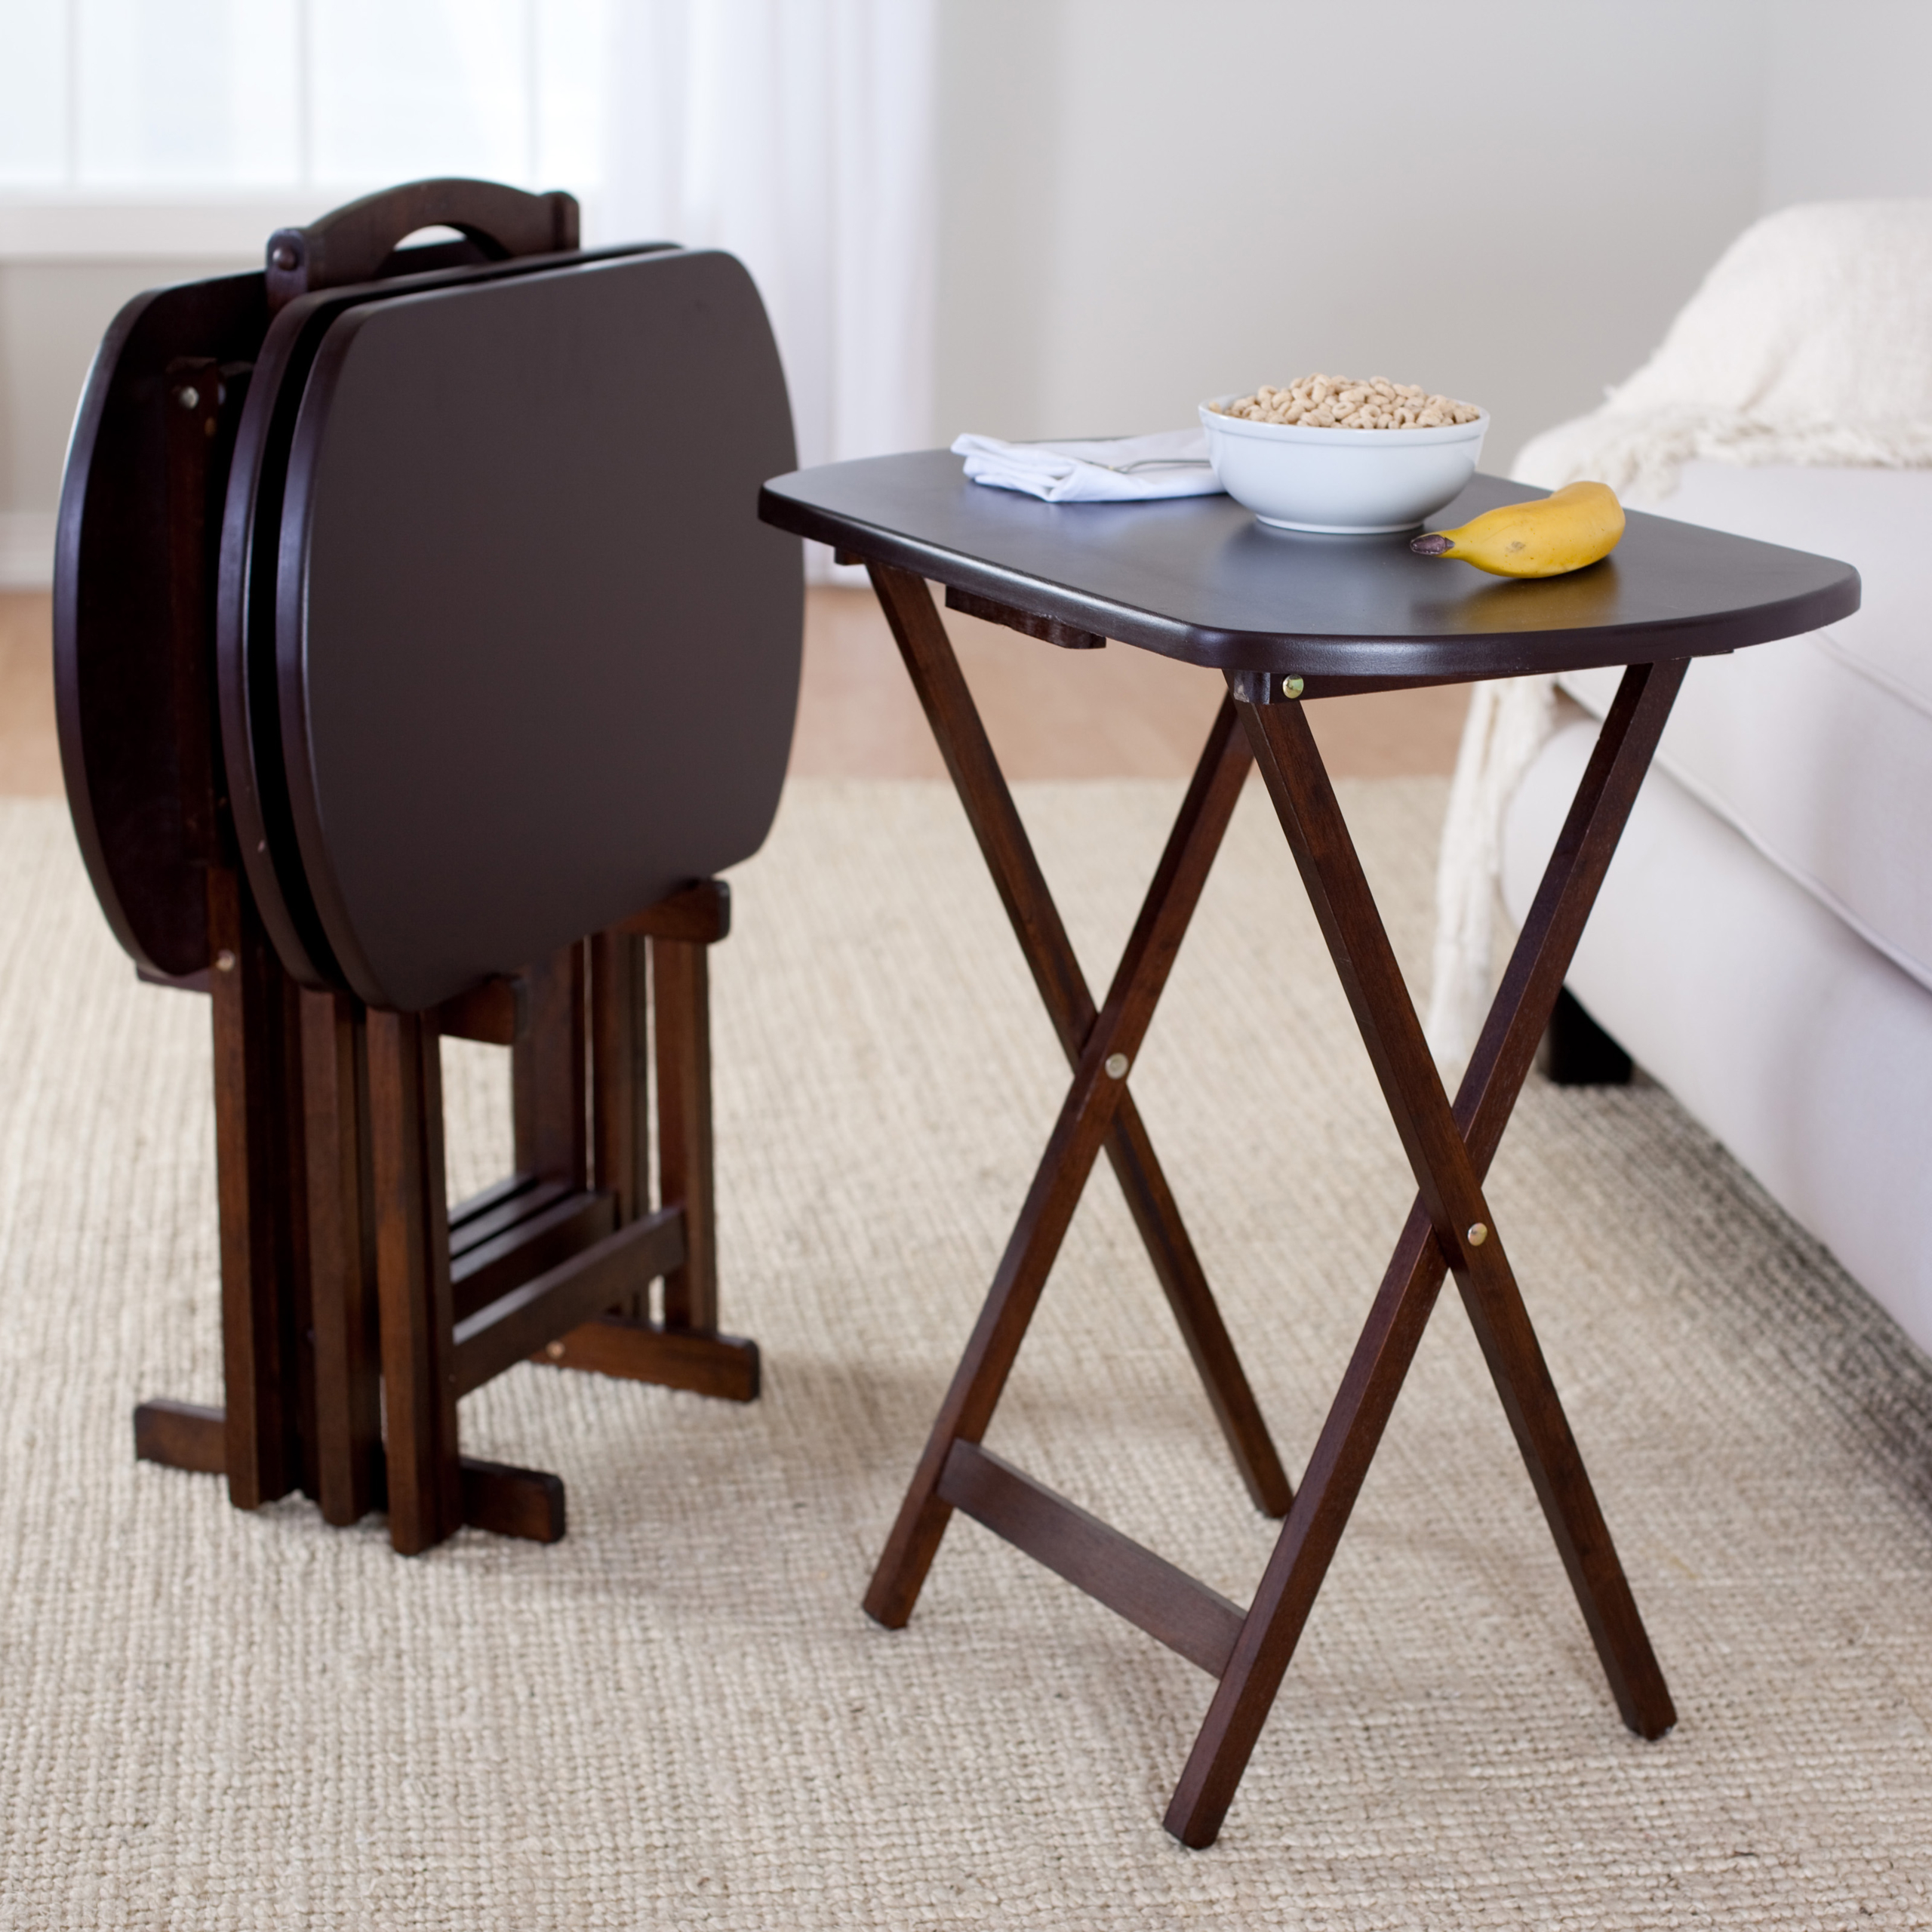 Winsome Trading Winsome 5-Piece Oblong TV Table Set & Folding Snack Tables With Stand - Foter